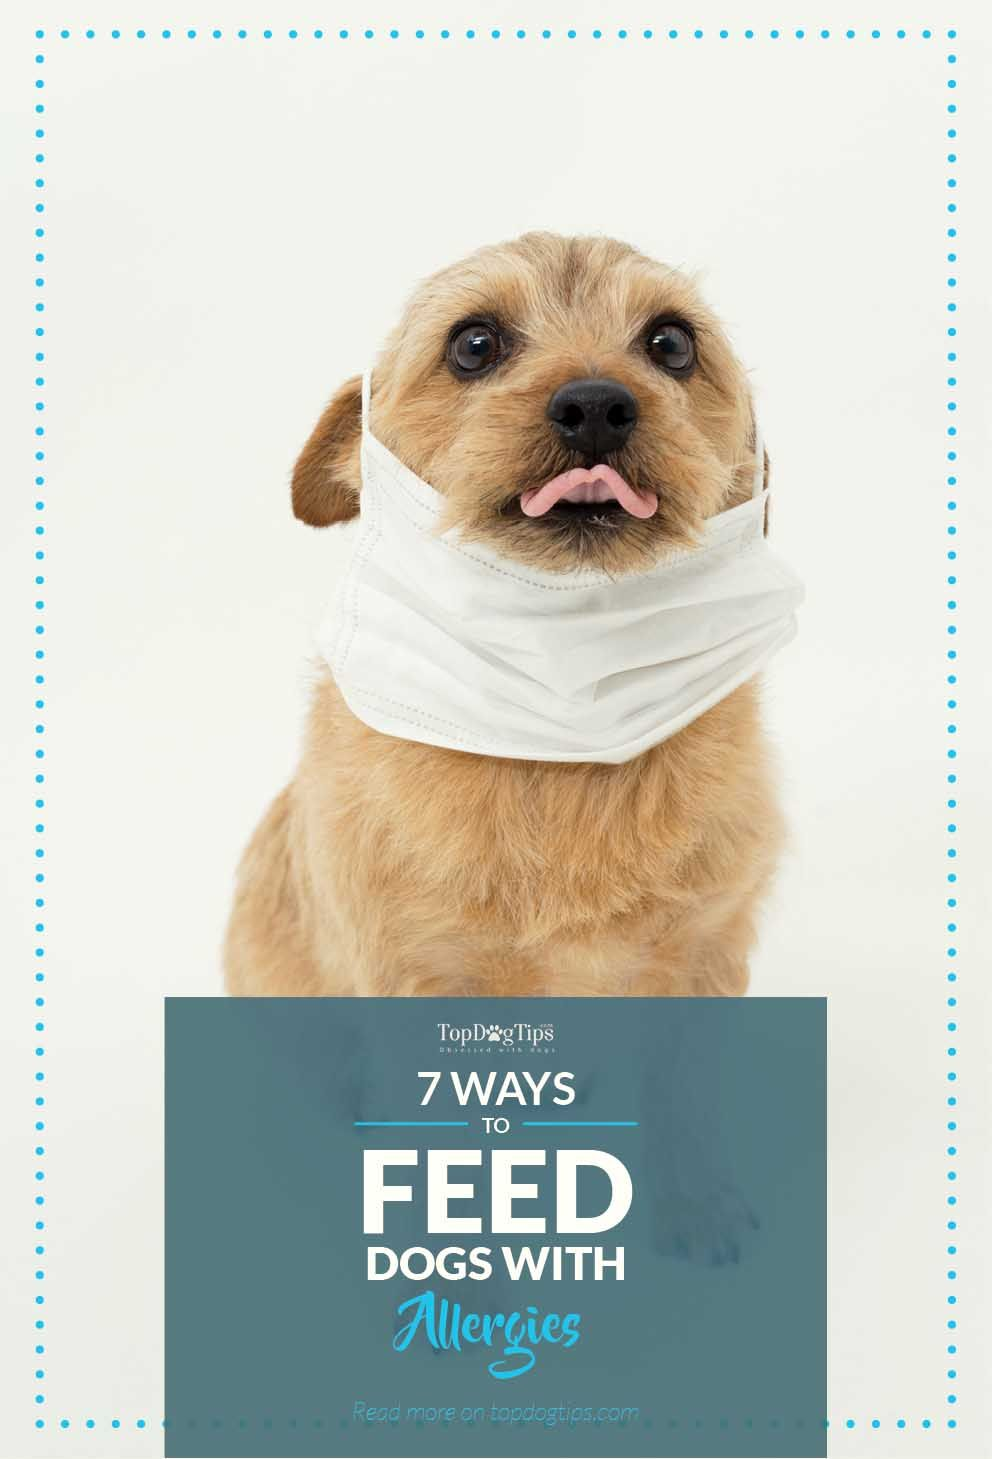 7 tips on how to feed dogs to deal with and prevent